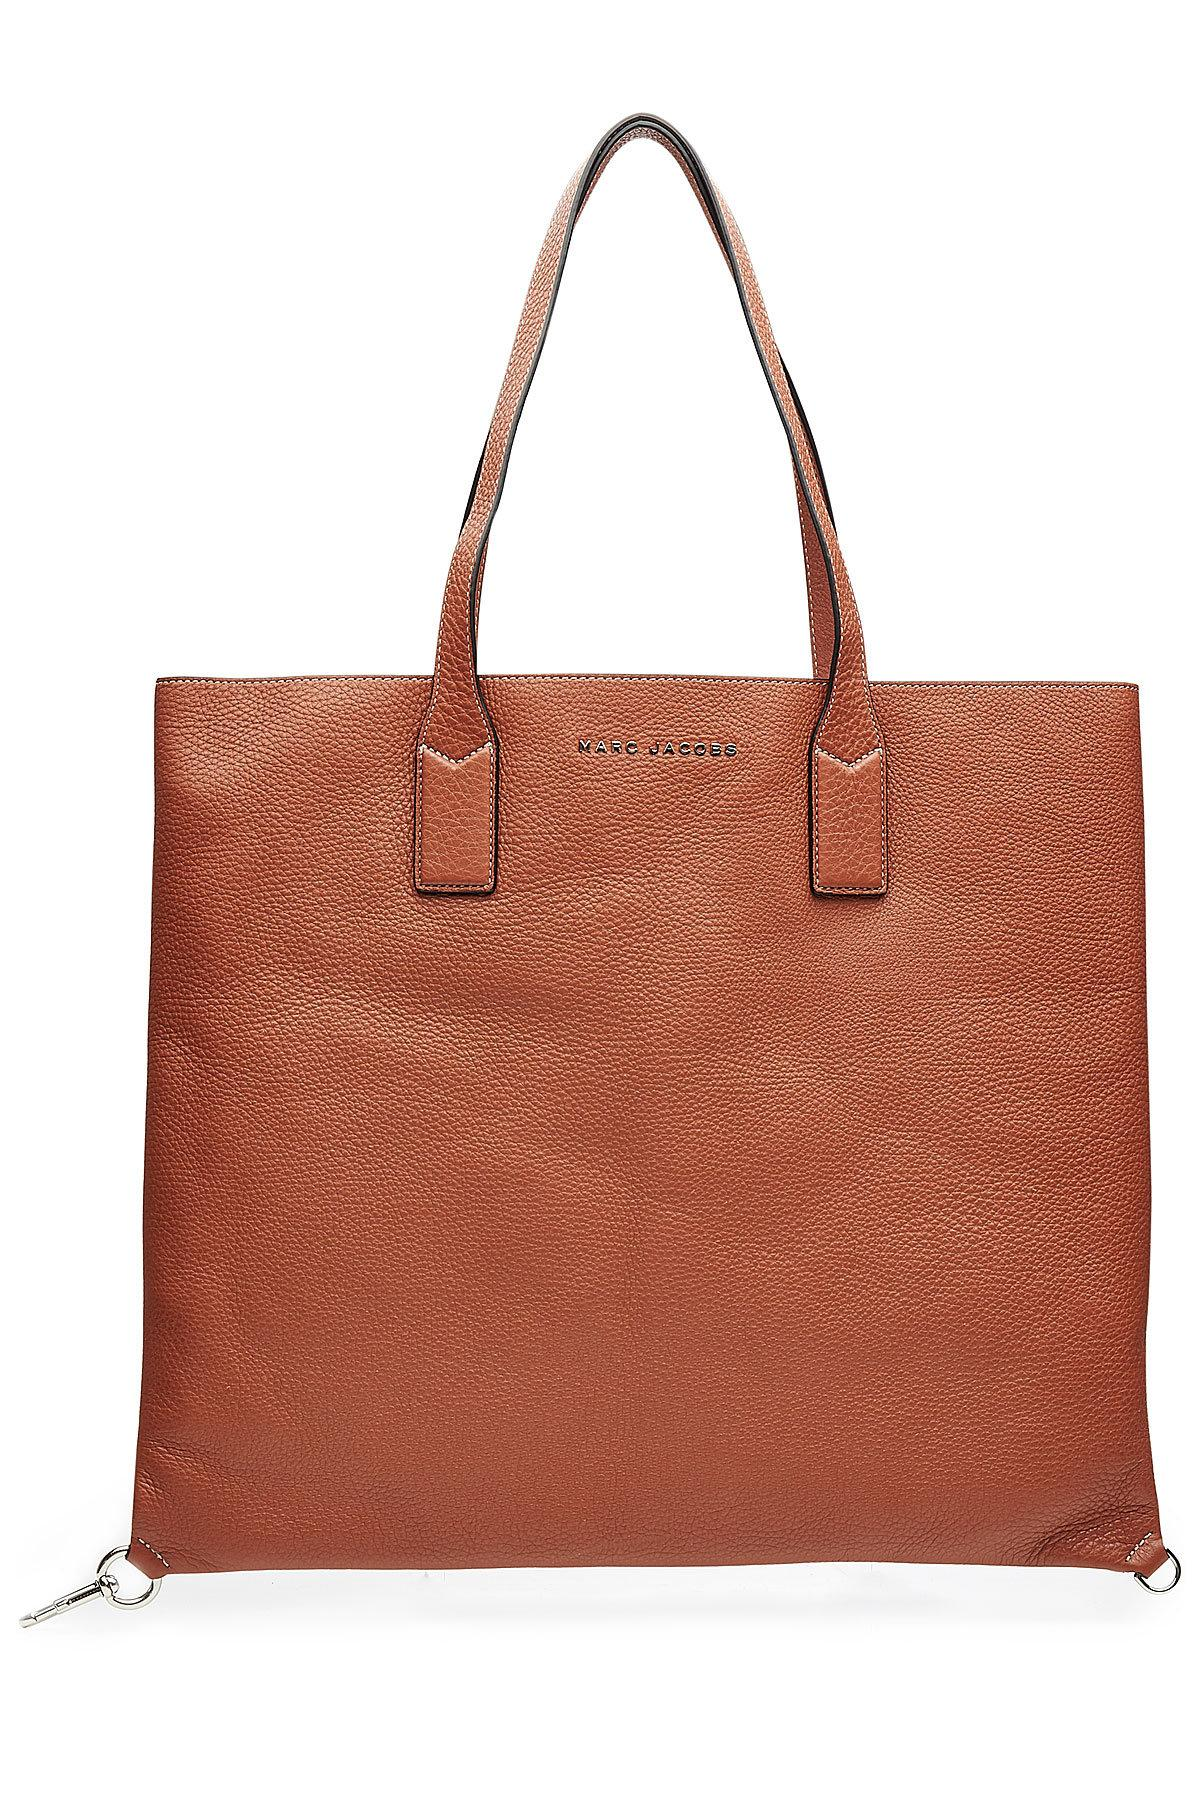 041dd09b9 Marc Jacobs Wingman Leather Tote Bags | Jaguar Clubs of North America